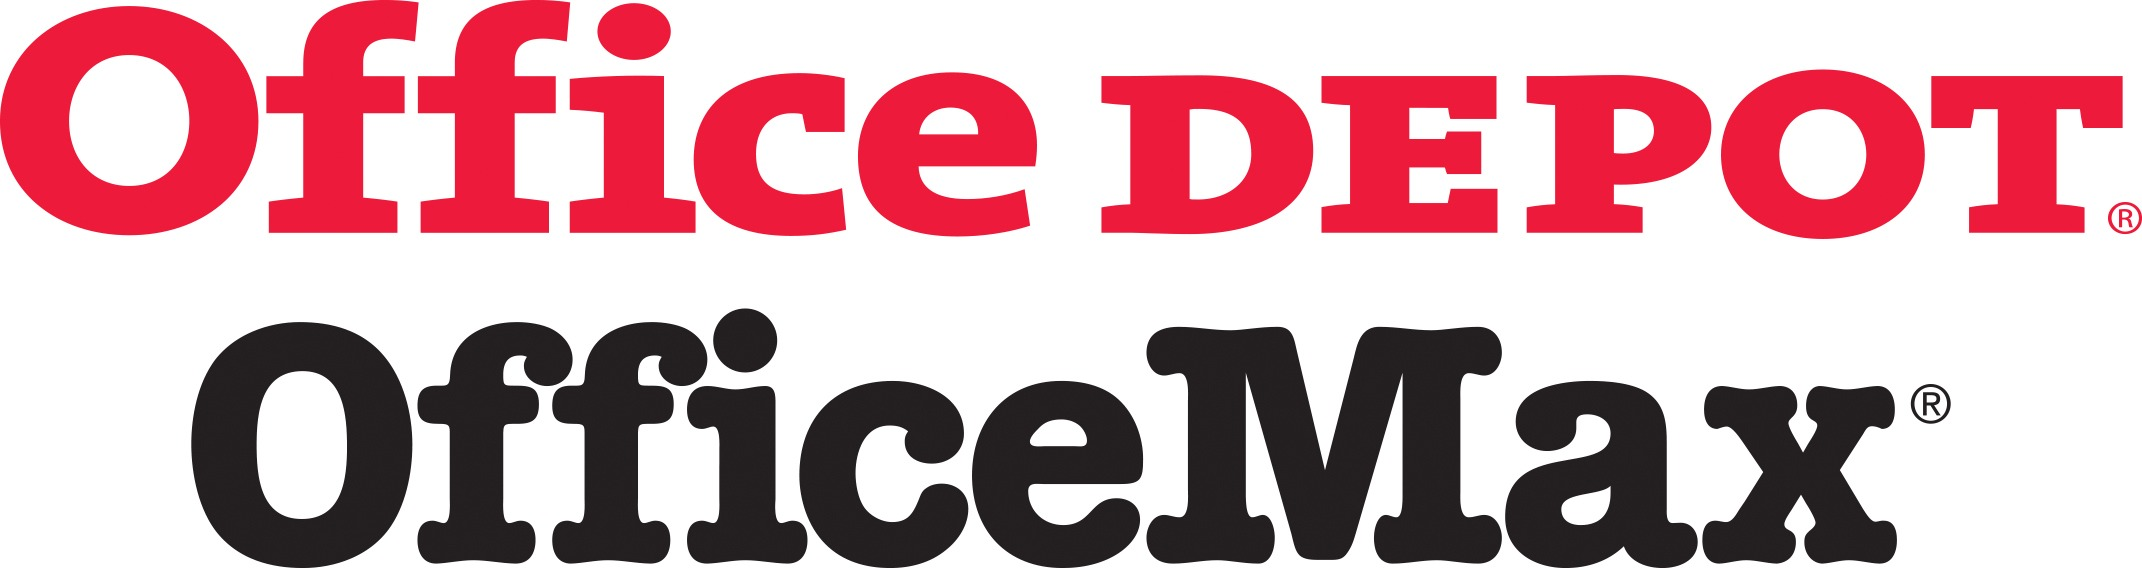 Office depot officemax 10 off gift cards discount magicingreecefo Gallery